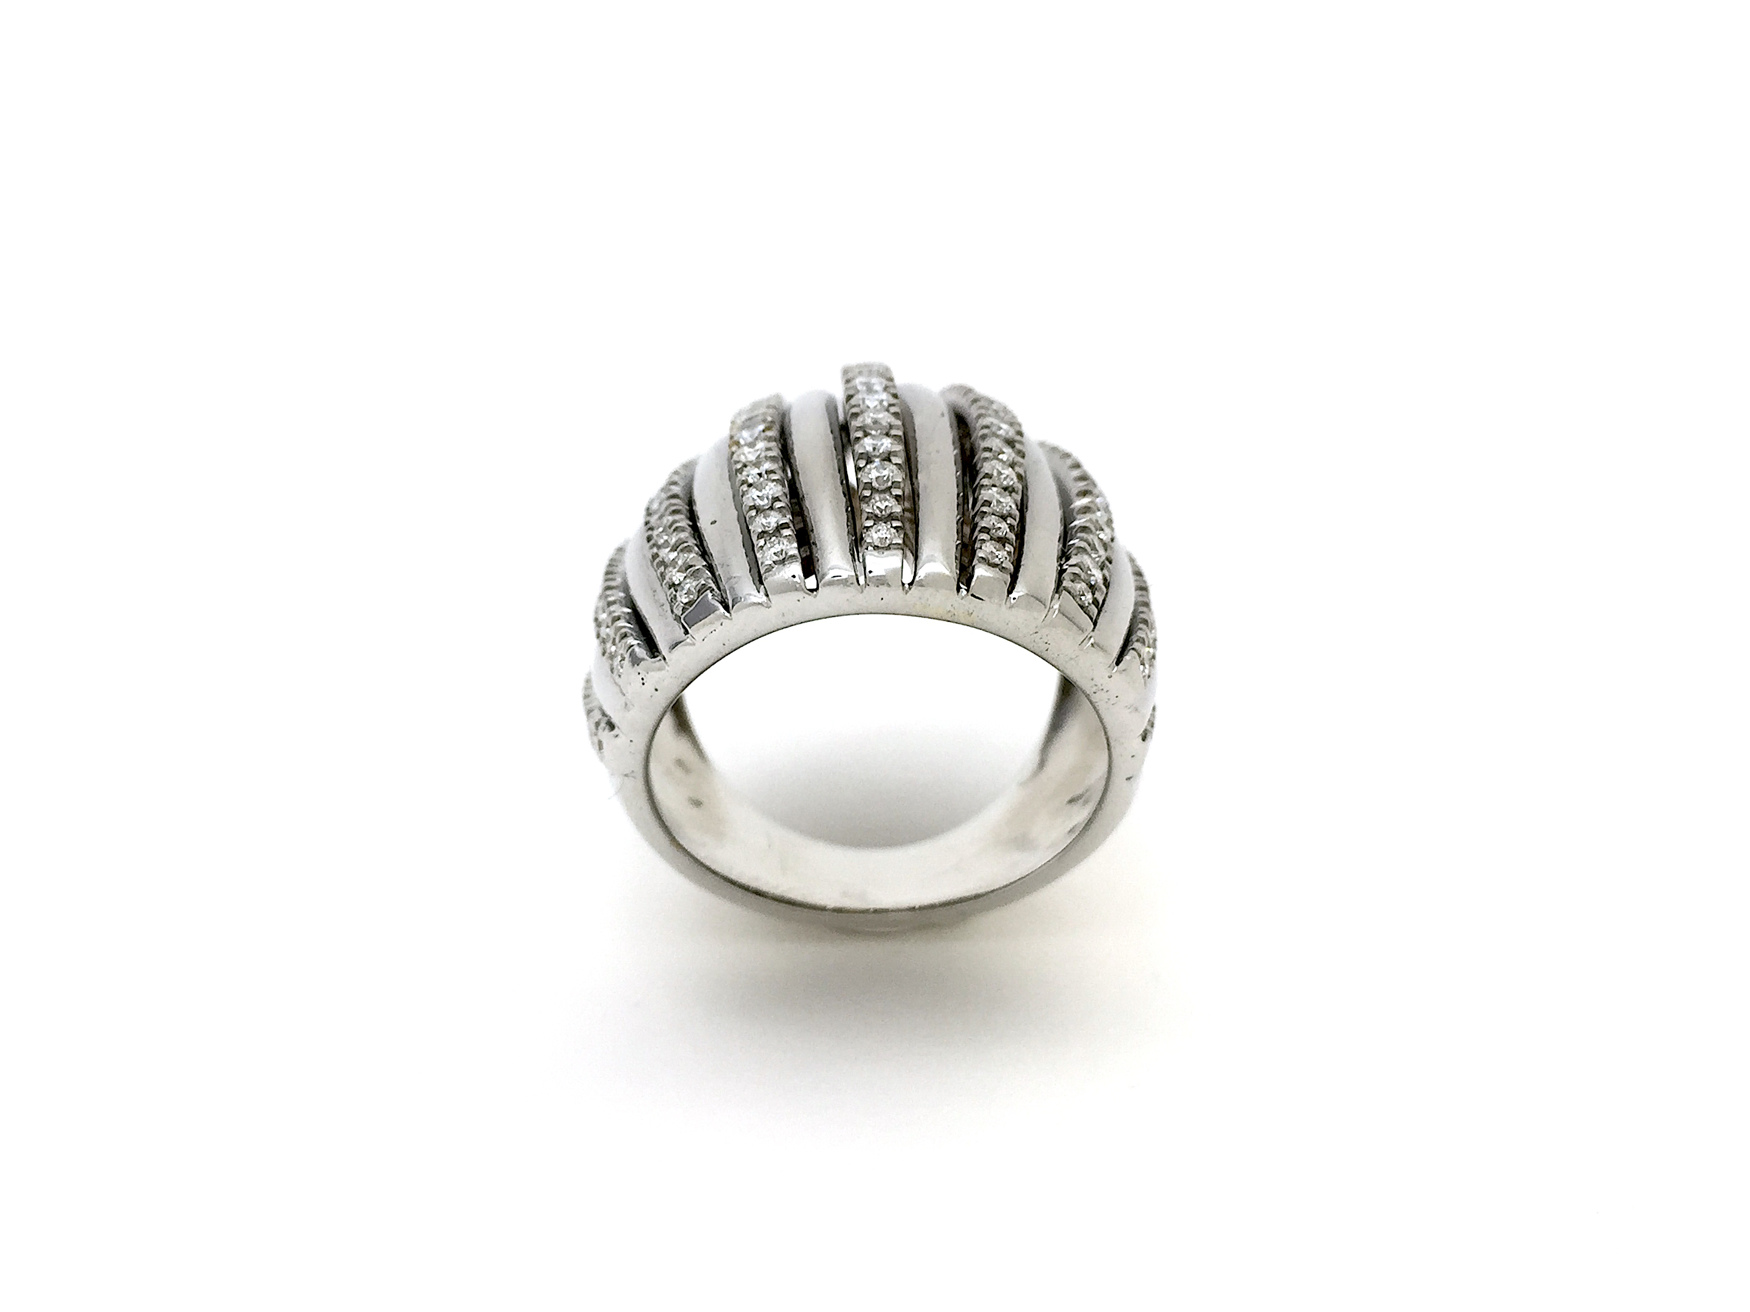 Sensi joyas high top jewellery Granada silver engagementWhite Gold